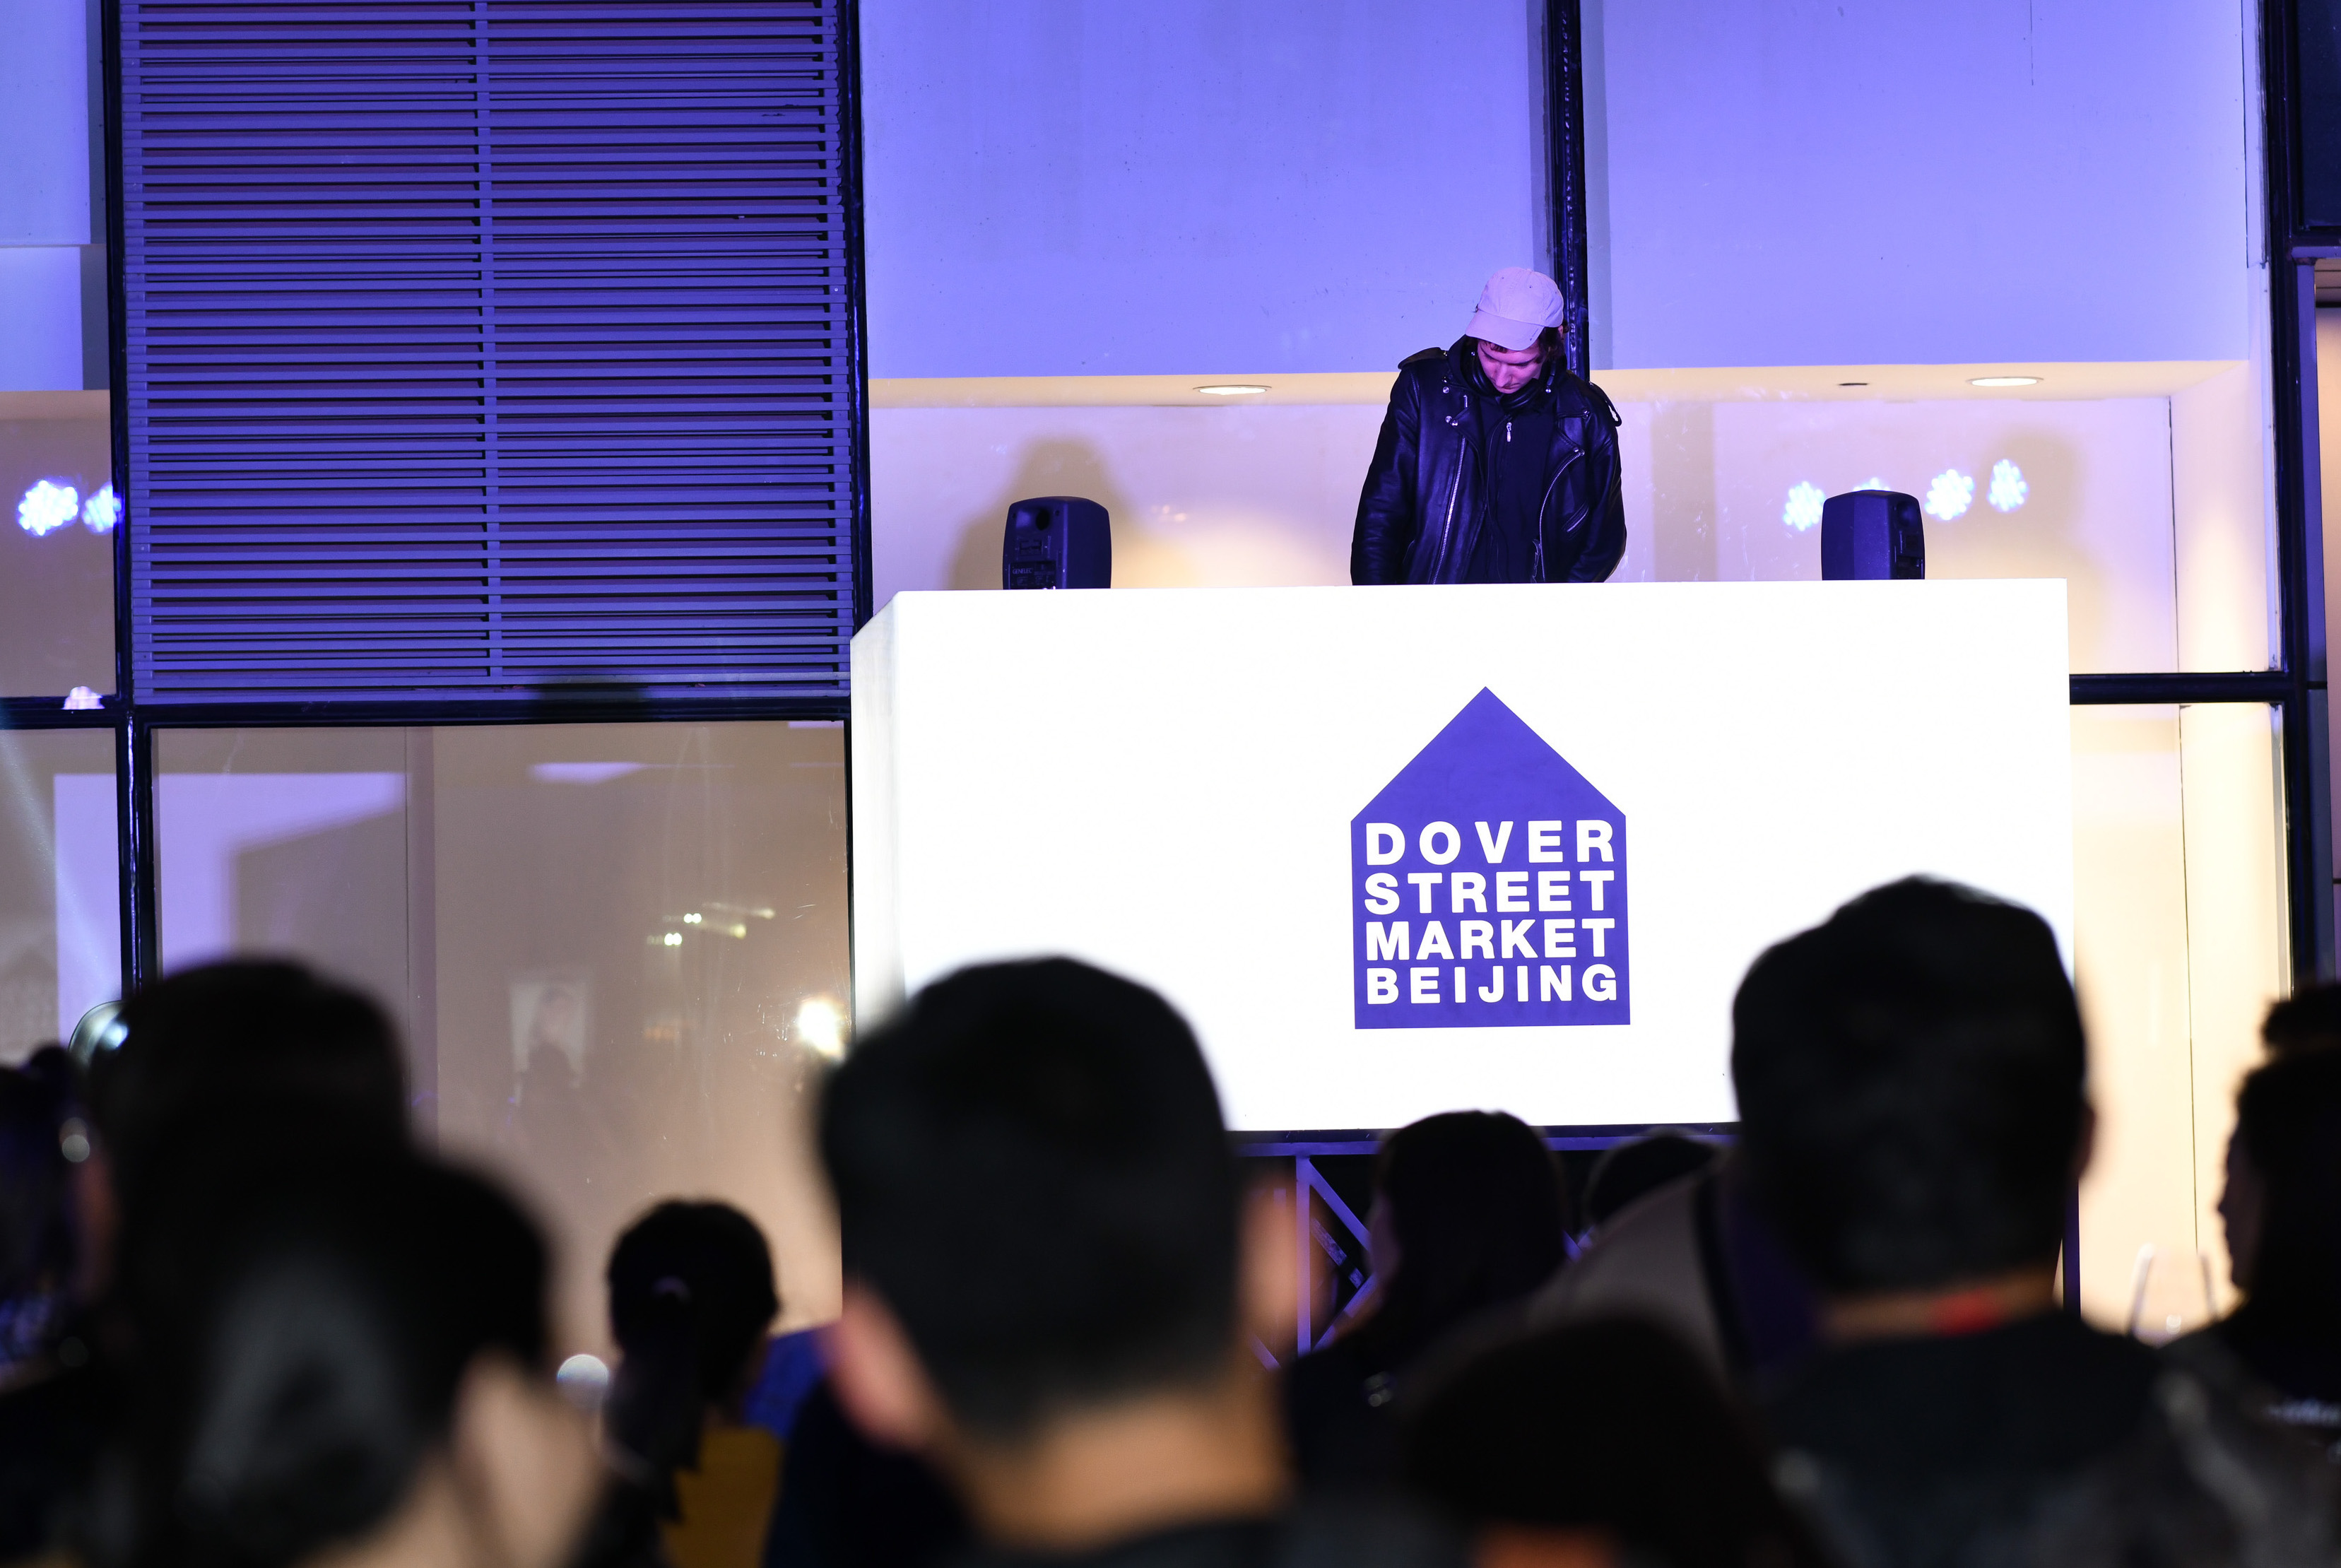 The opening night party at the new rebranded Dover Street Market in Beijing. It is the fifth location for the concept store.